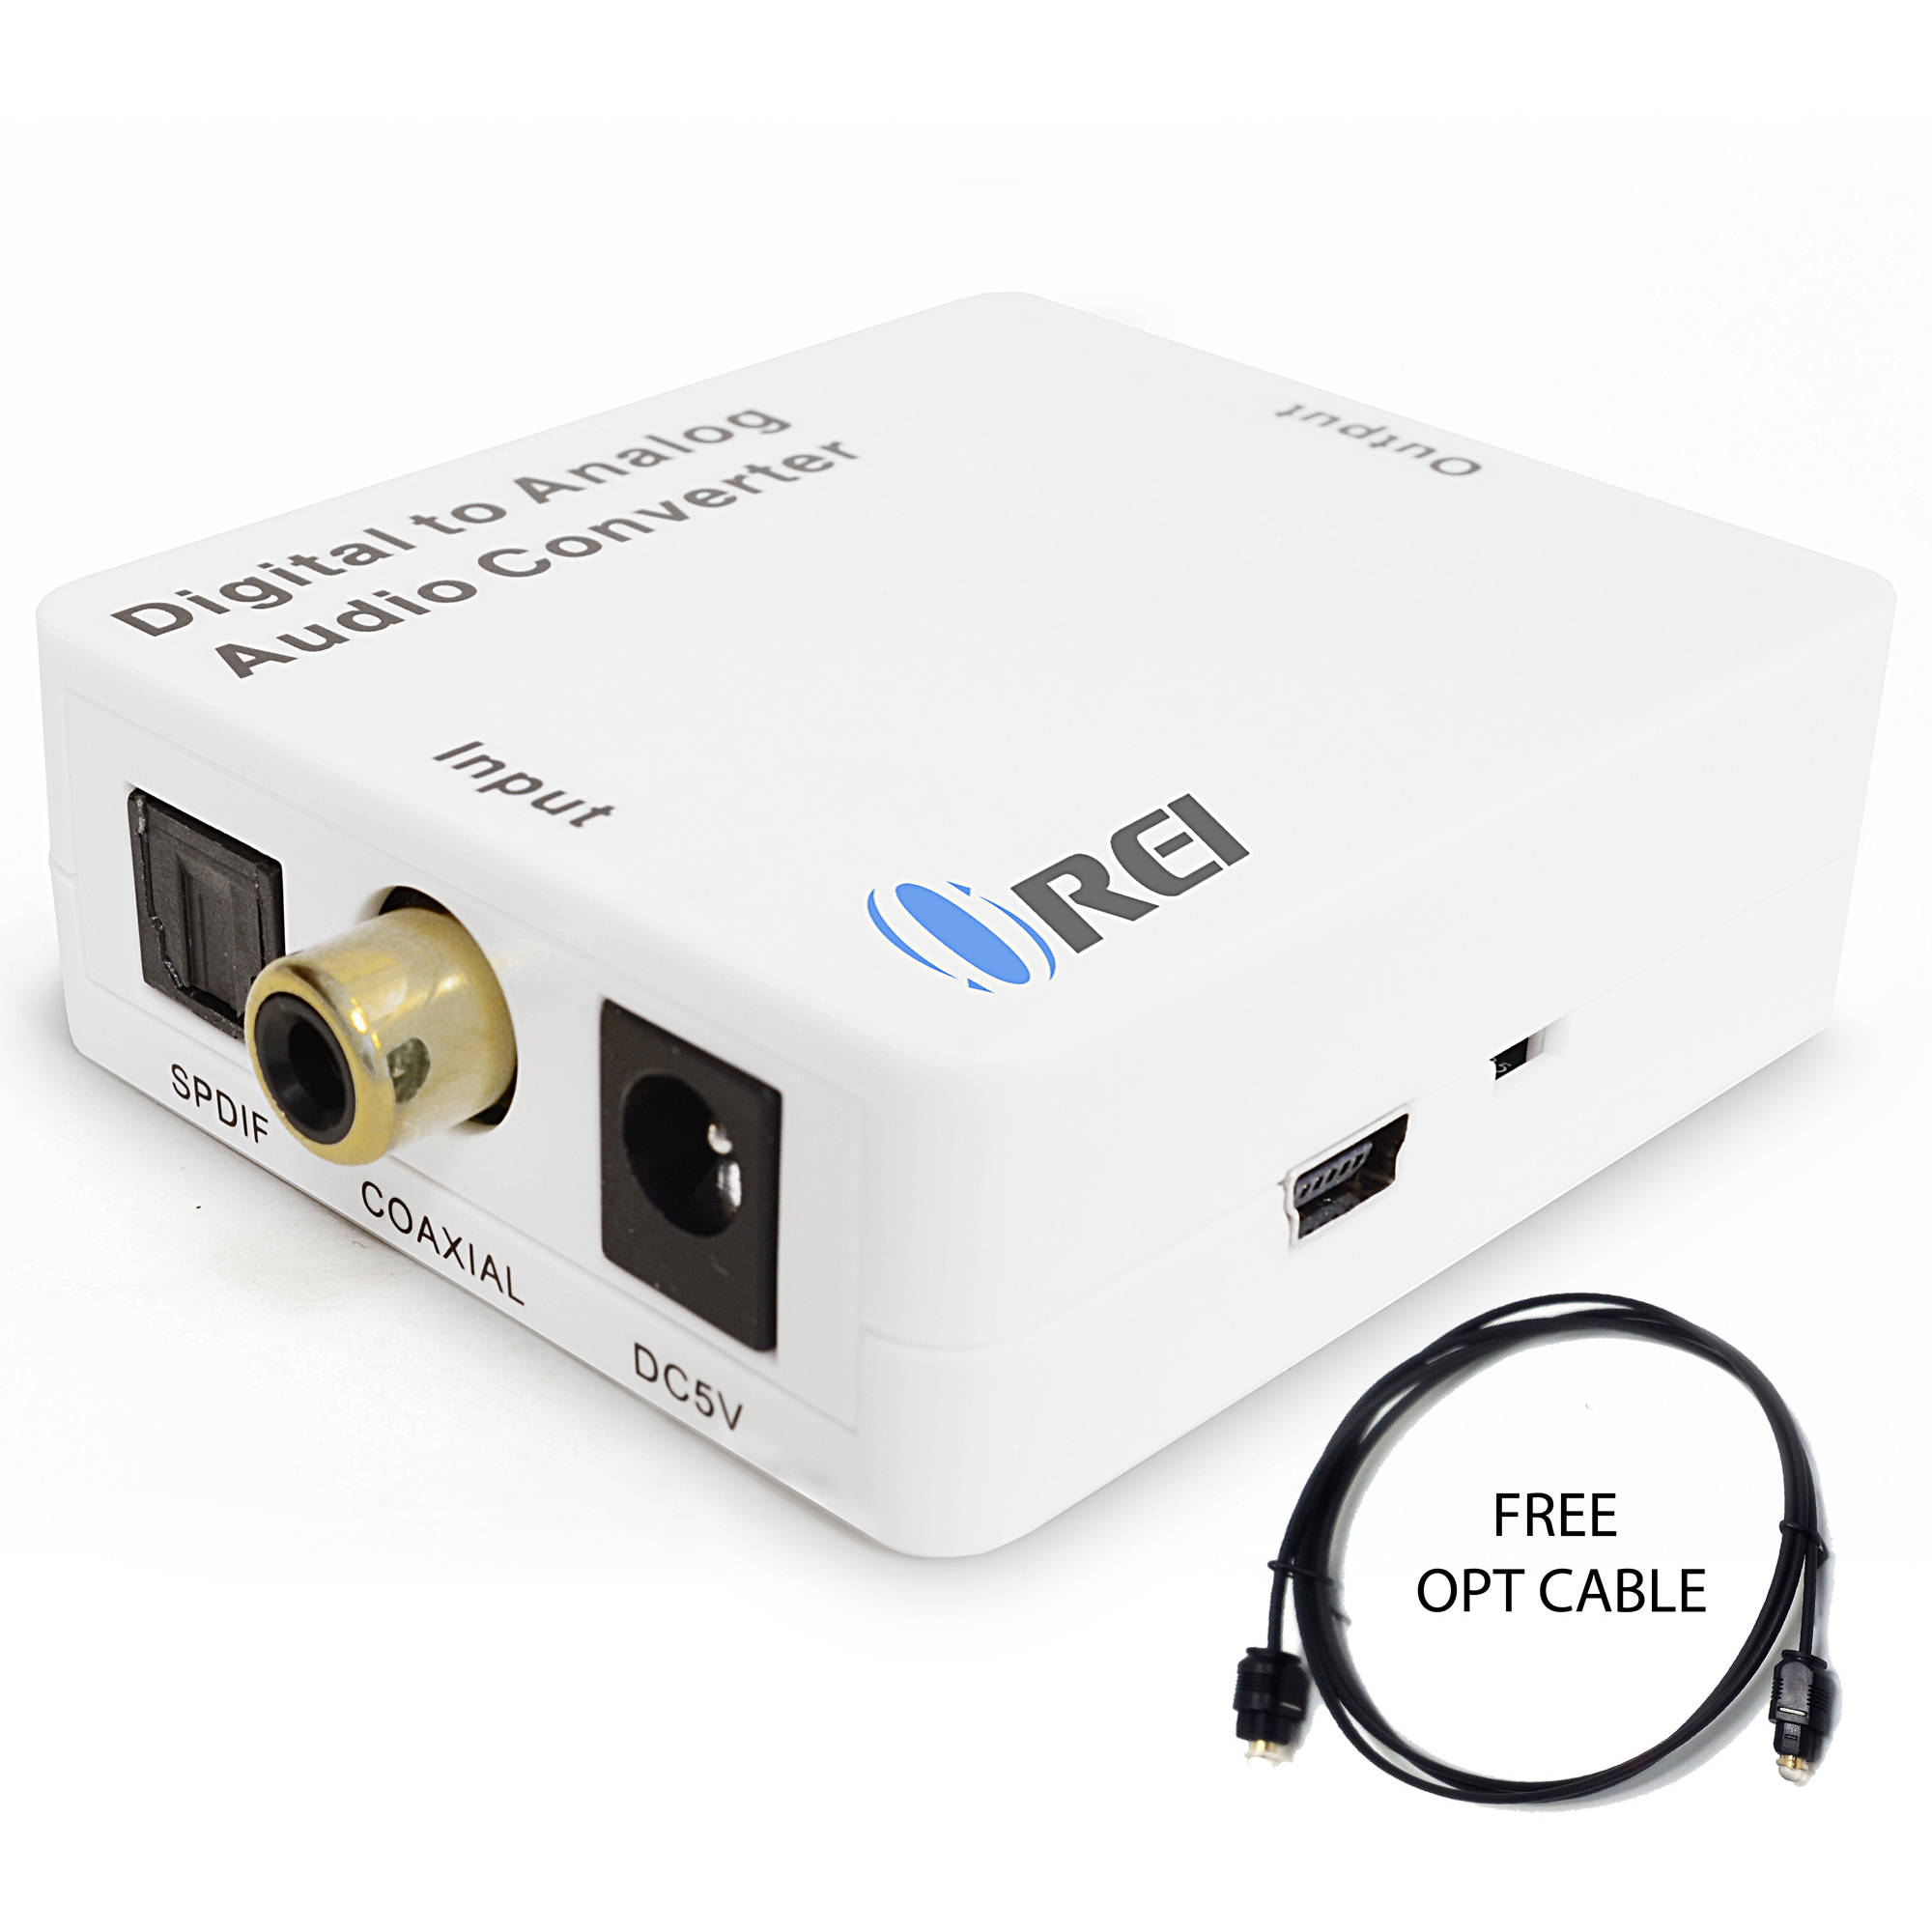 Orei DA21 Optical SPDIF/Coaxial Digital to RCA L/R Analog Audio Converter with 3.5mm Jack Support Headphone/Speaker Outputs